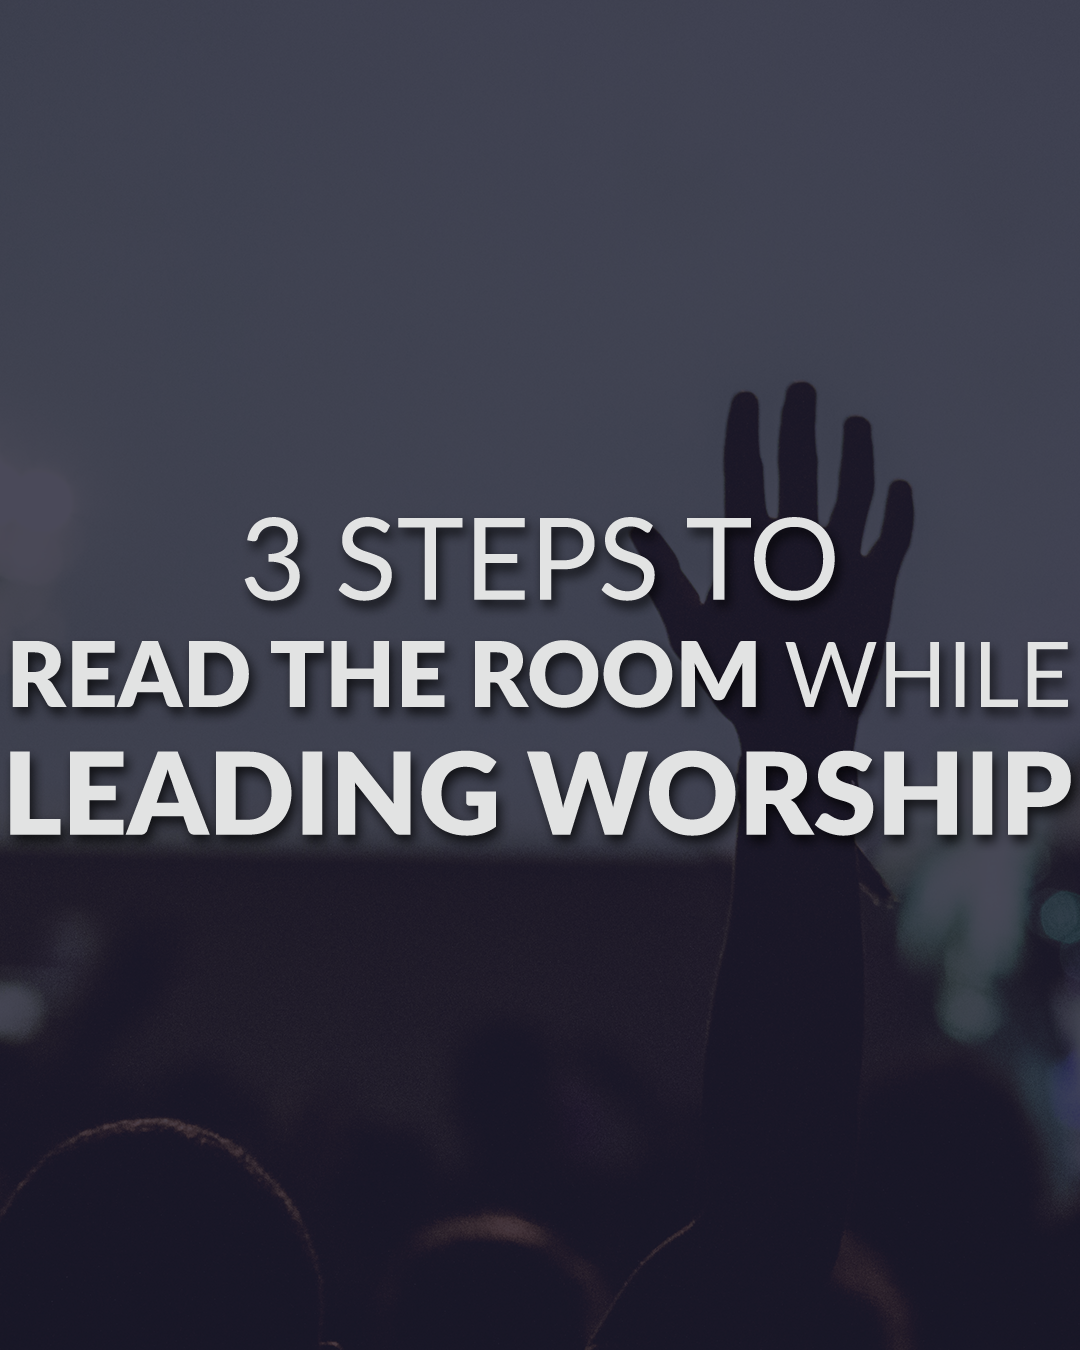 3 Steps To Read The Room While Leading Worship